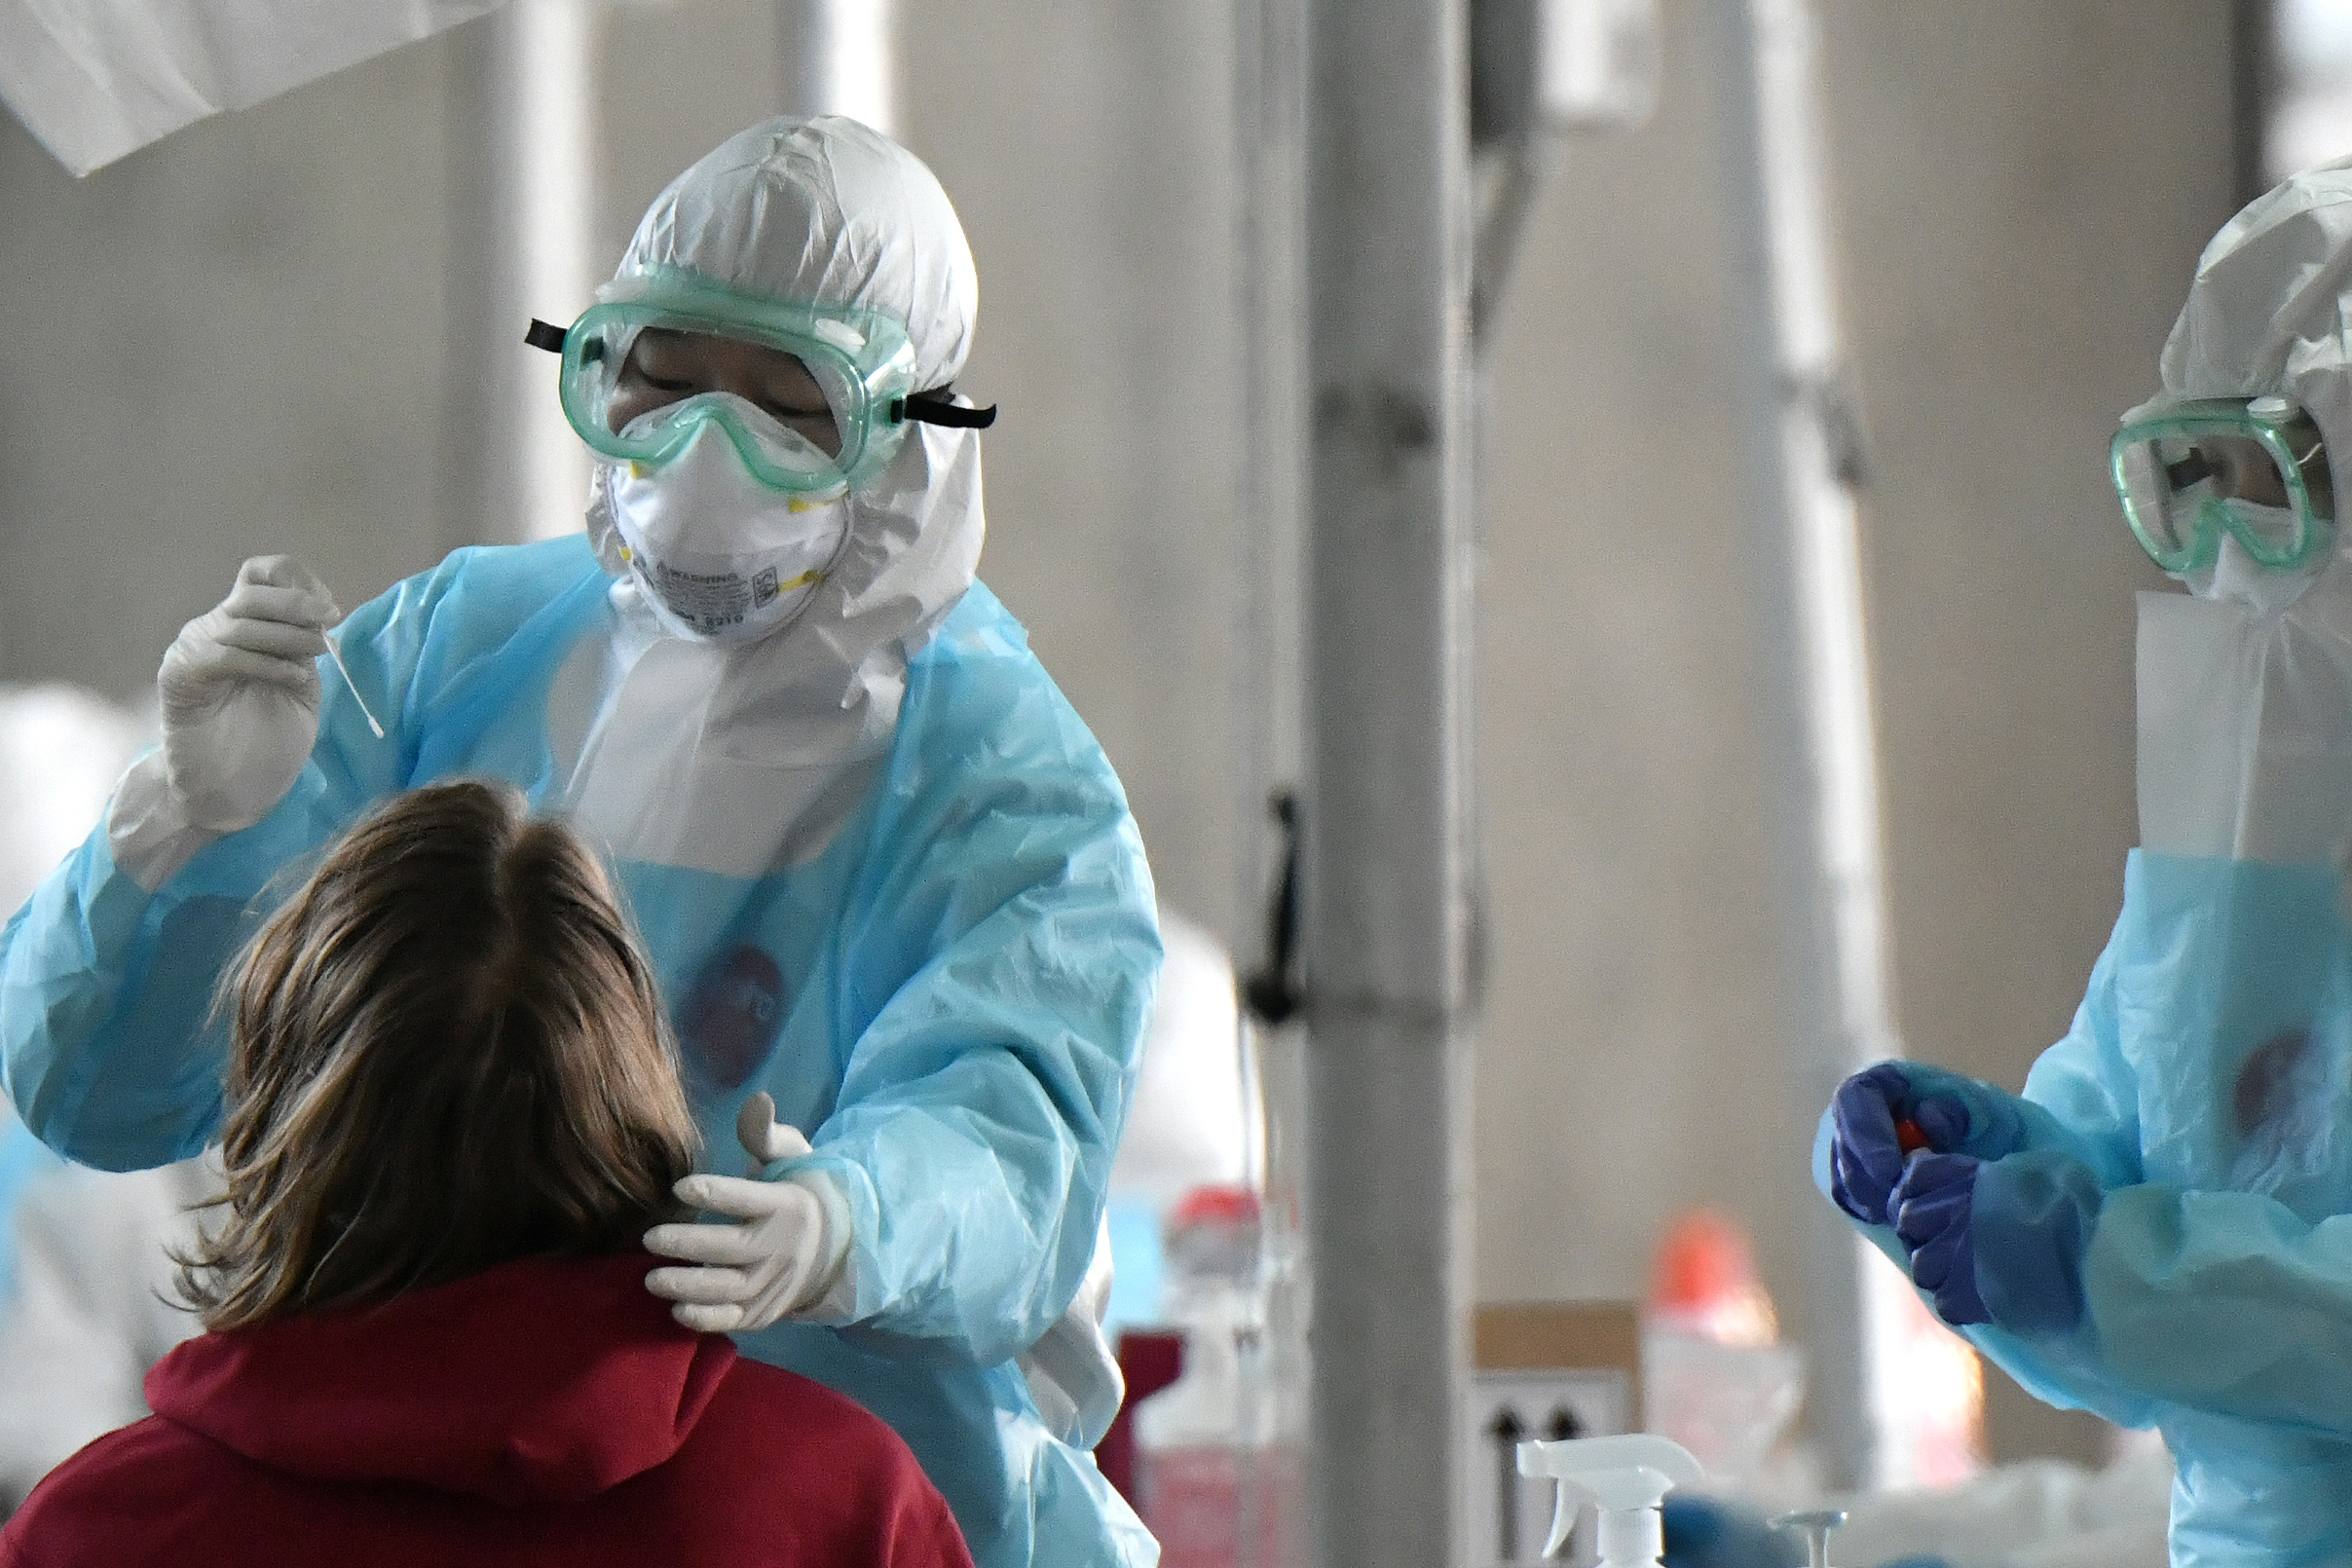 A medical staff wearing protective clothing takes test samples for the COVID-19 coronavirus from a foreign passenger at a virus testing booth outside Incheon international airport, west of Seoul, on April 1, 2020. (JUNG YEON-JE/AFP via Getty Images)